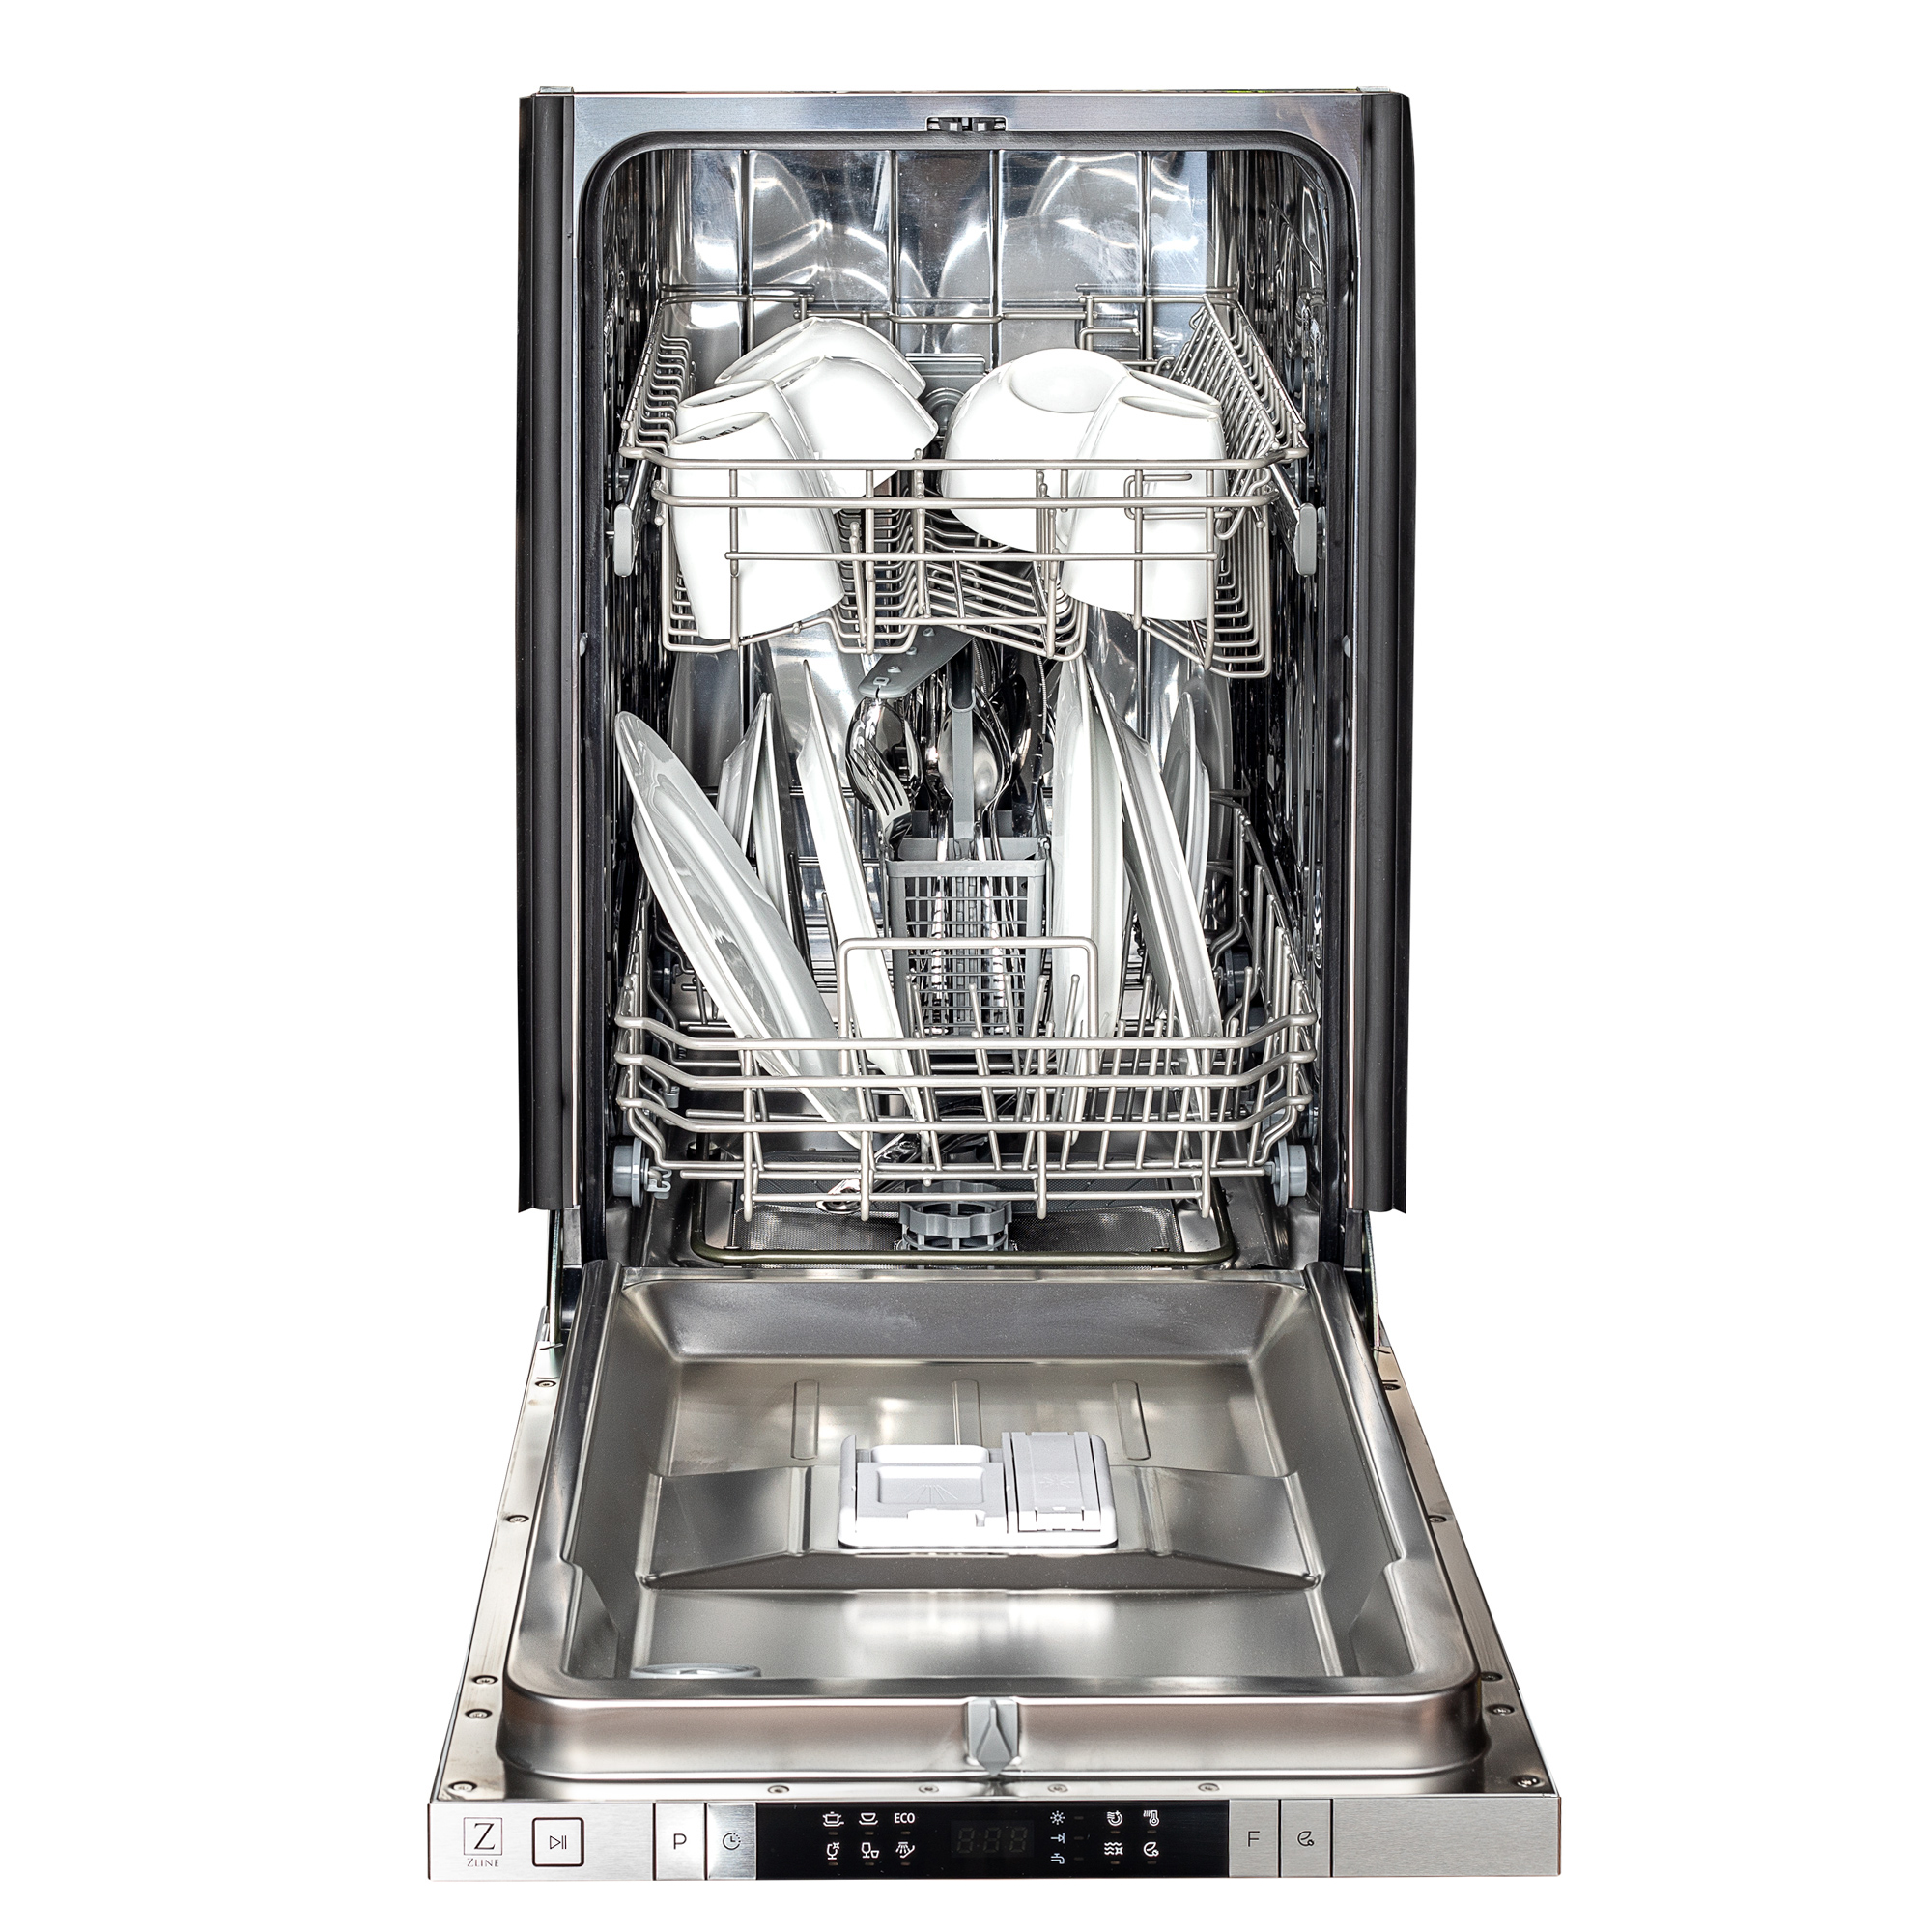 dishwasher-panel-edit-18_MA_v0.1.jpg